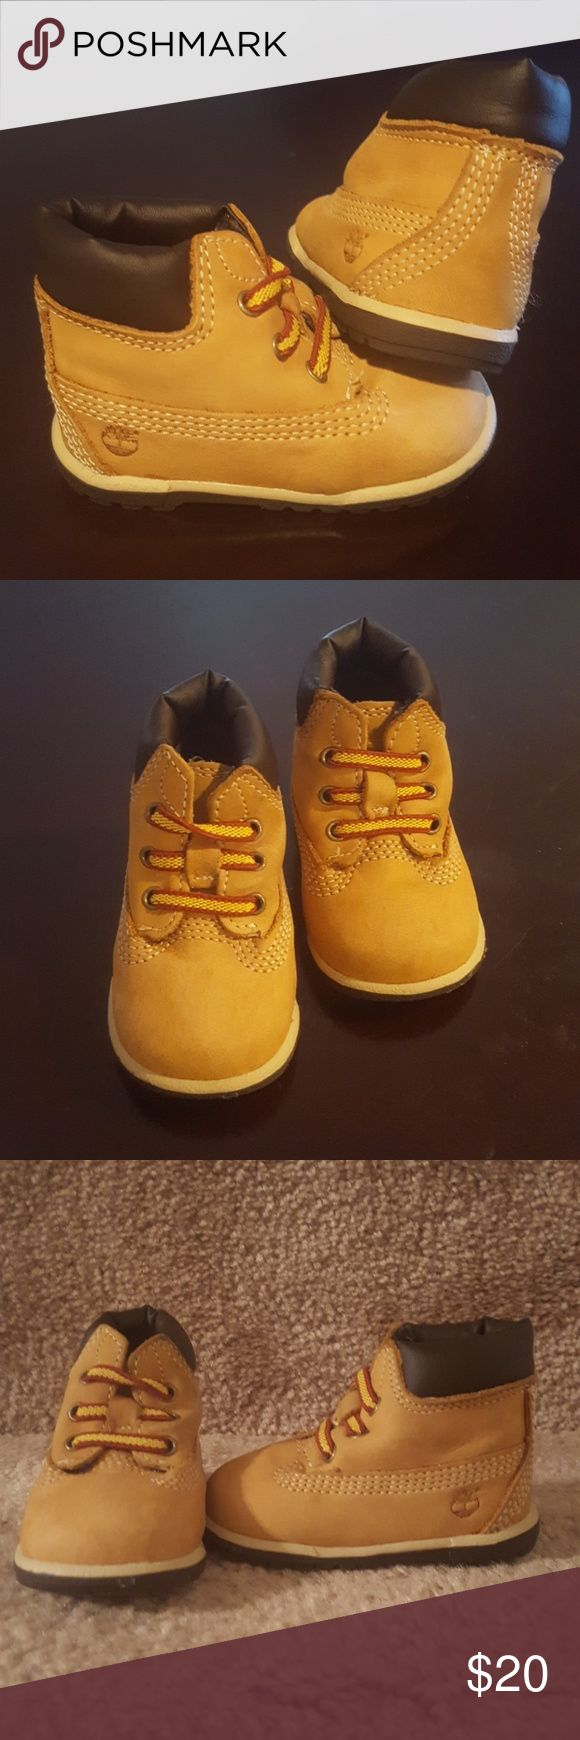 "Infant Timberland Wheat 6"" Hard Sole Bootie Size 1 Infant Timberland Wheat 6"" Hard Sole Bootie Size 1. No original box. Gently used. Timberland Shoes Boots"